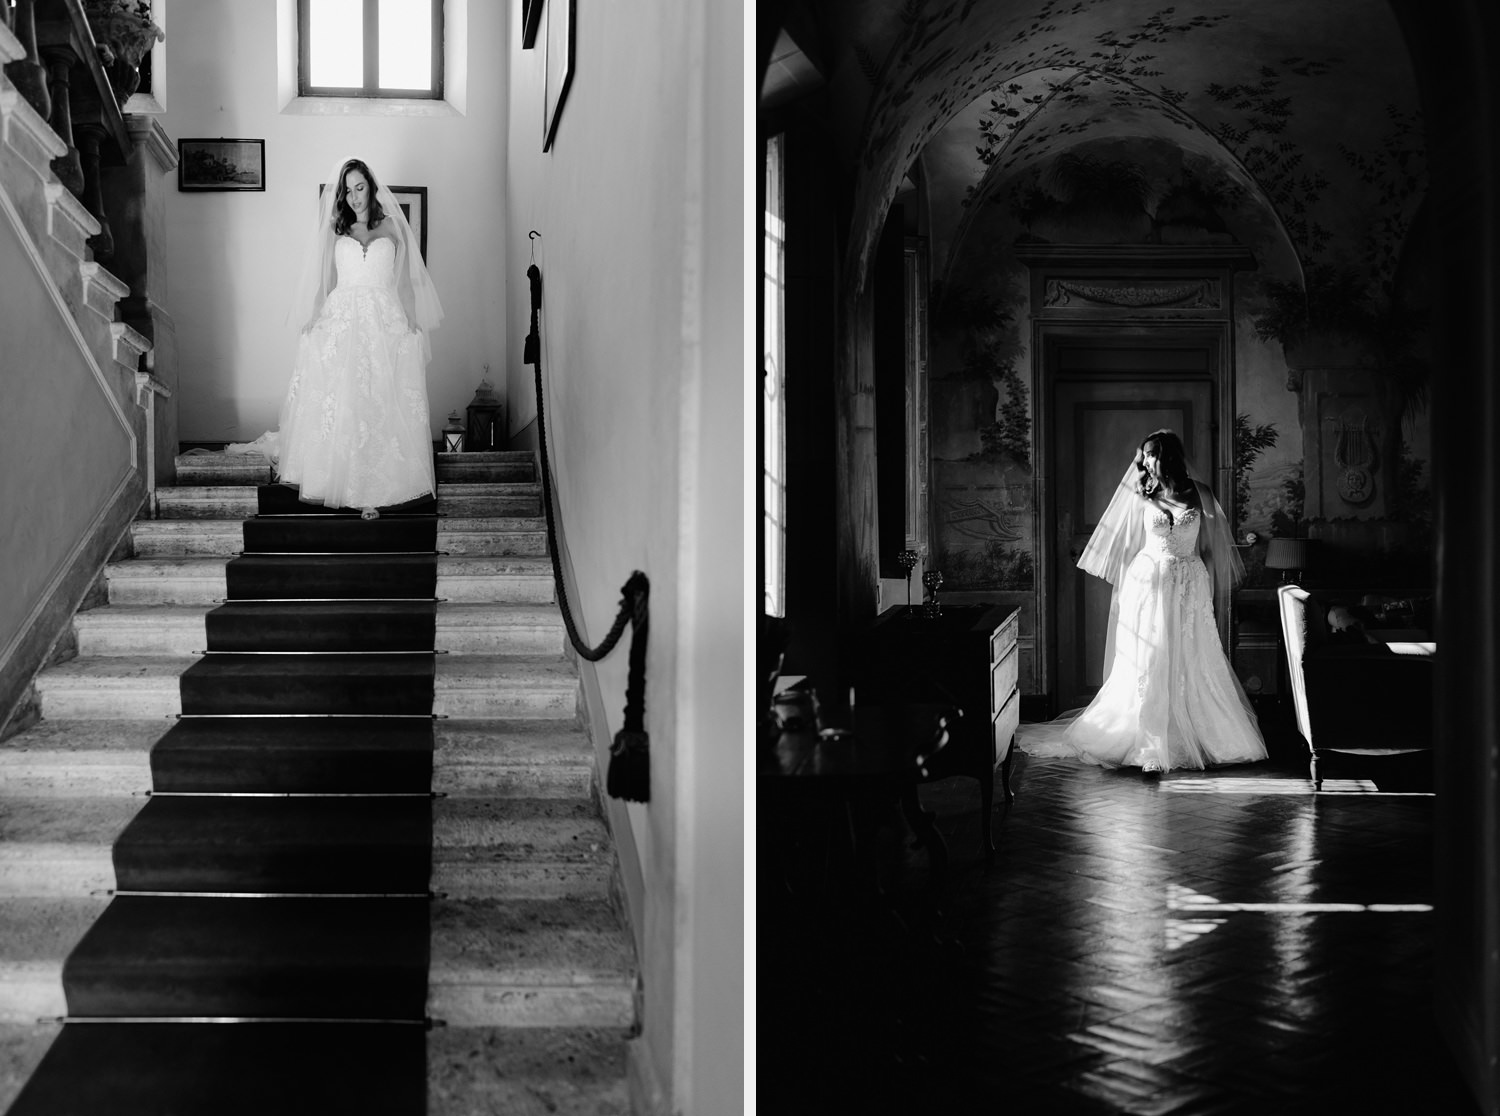 villa catignano wedding photogprapher siena bride laidback getting ready wearing wedding dress